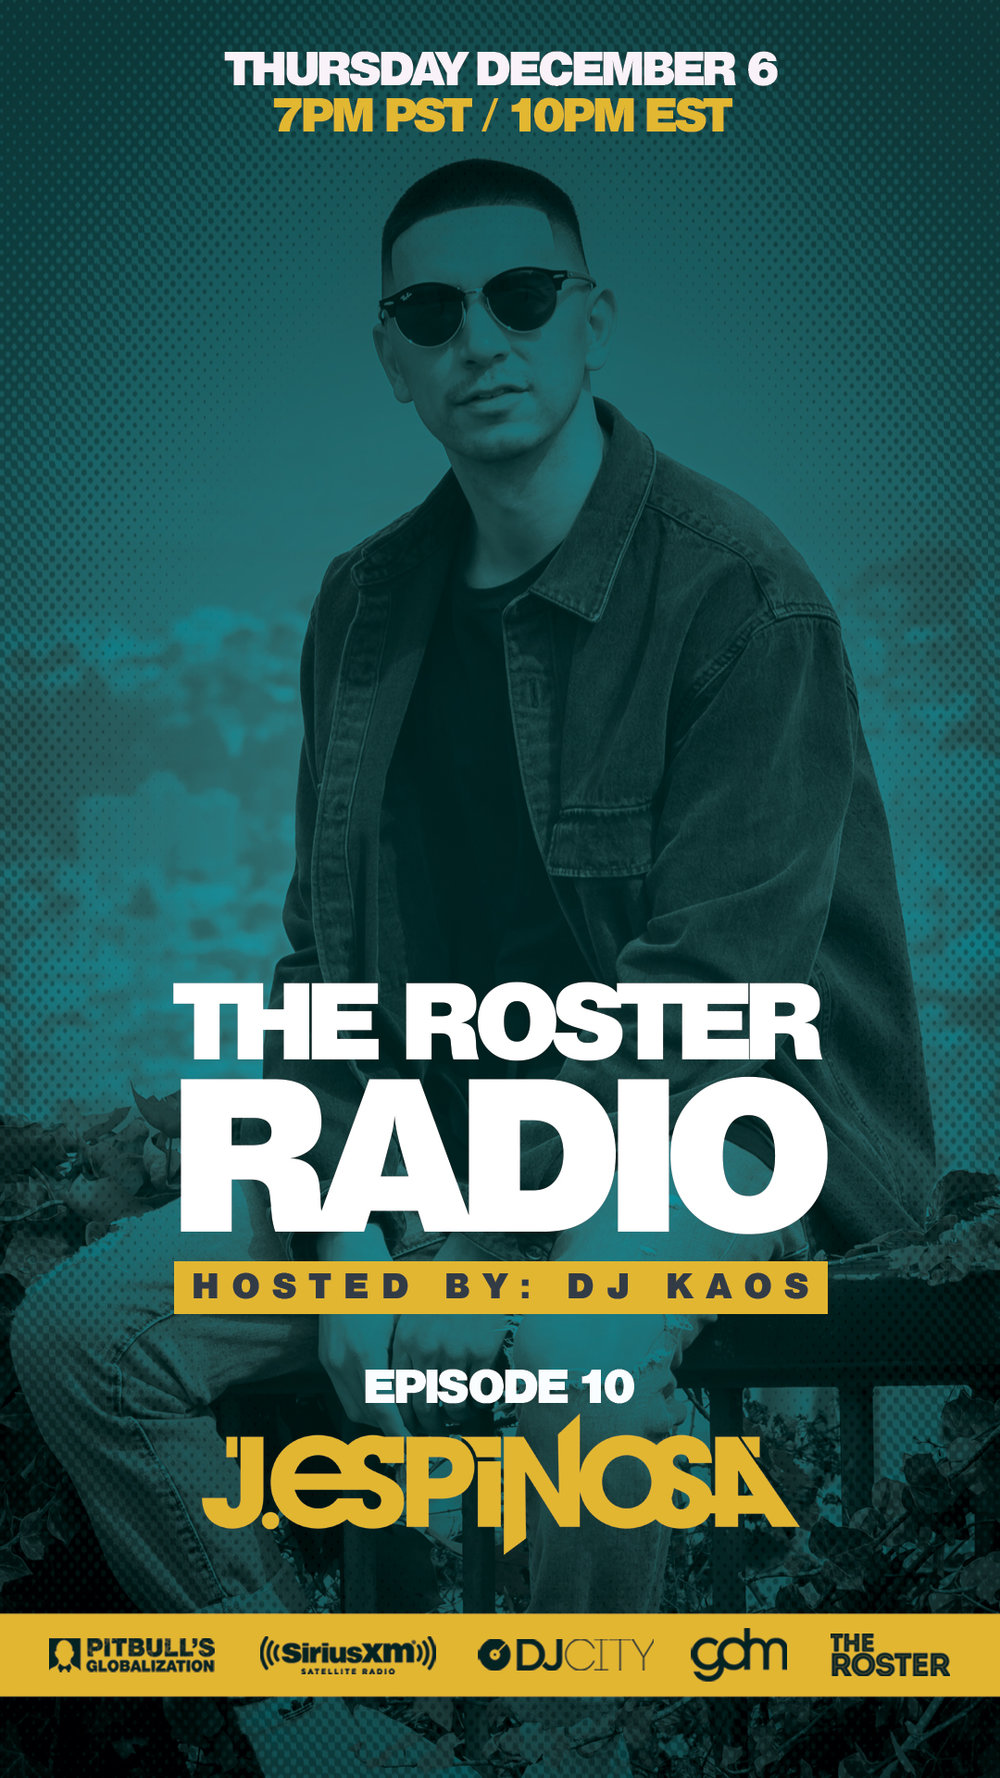 TheRosterRadio-Episode10-Espinosa-Art.jpg